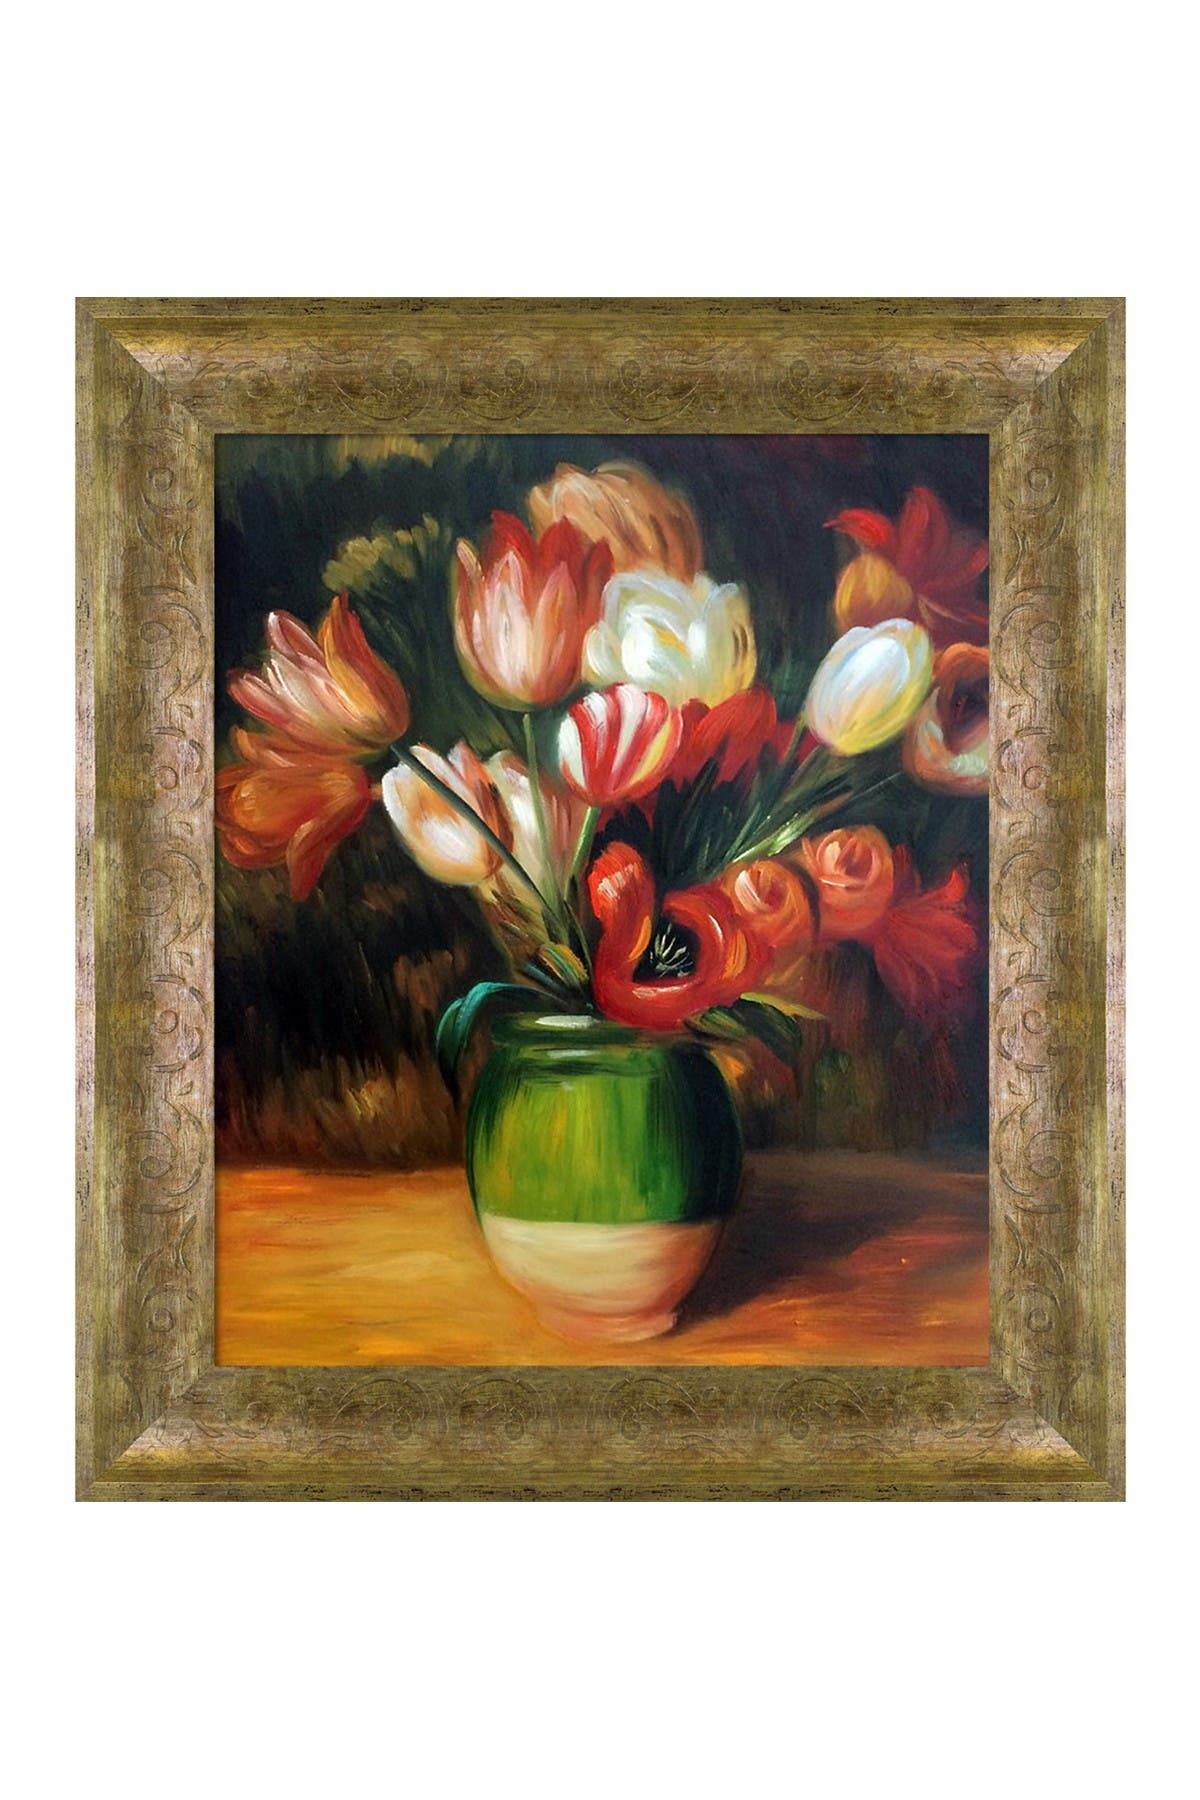 Image of Overstock Art Tulips in a Vase - Framed Oil Reproduction of an Original Painting by Pierre-Auguste Renoir